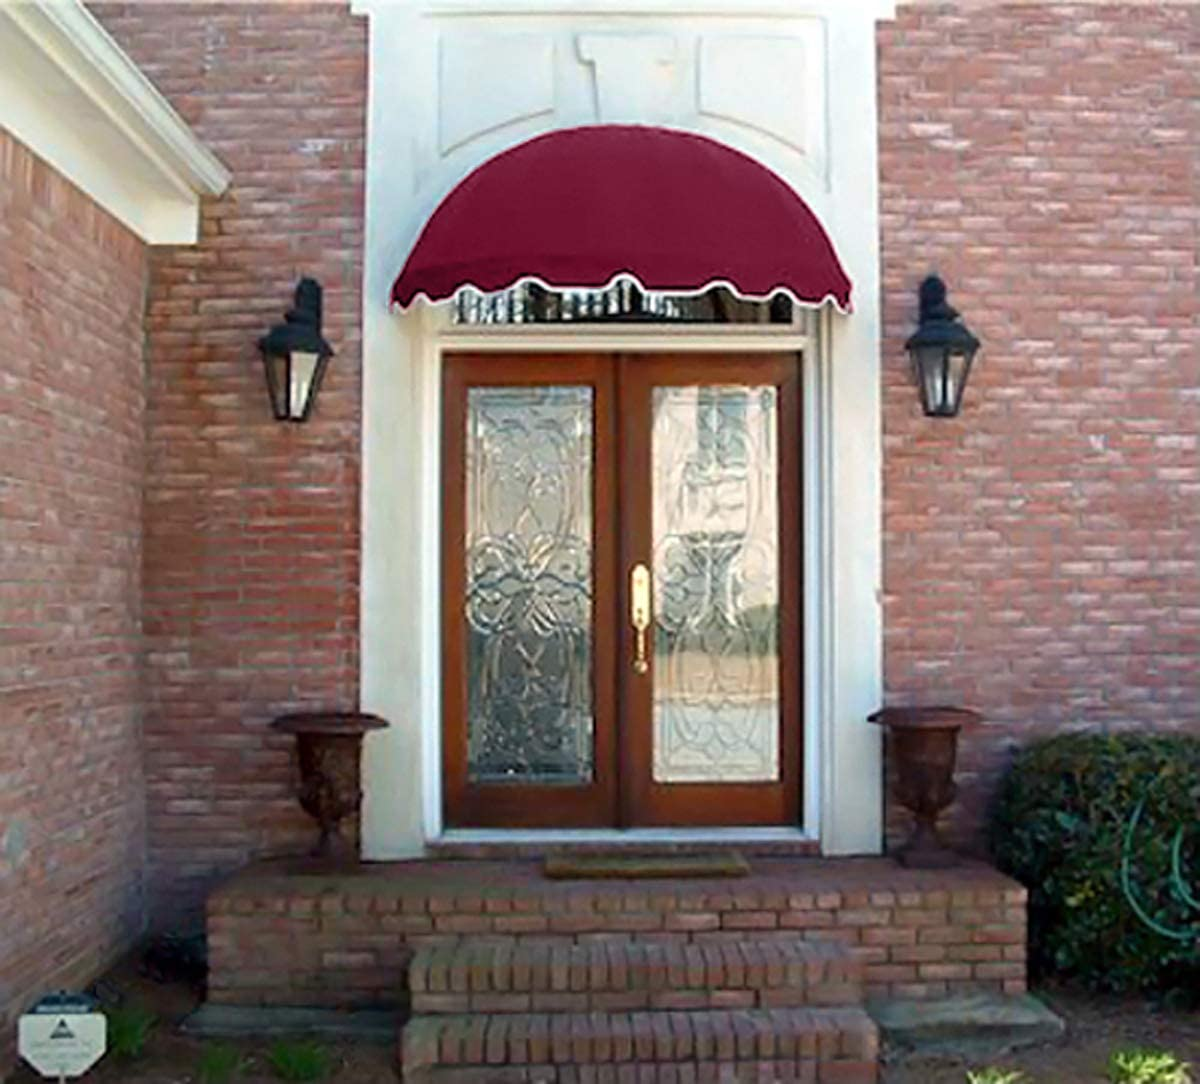 Dome Style Window Awning or Door Canopy 6 Wide in Sunbrella Awning Fabric – Burgundy